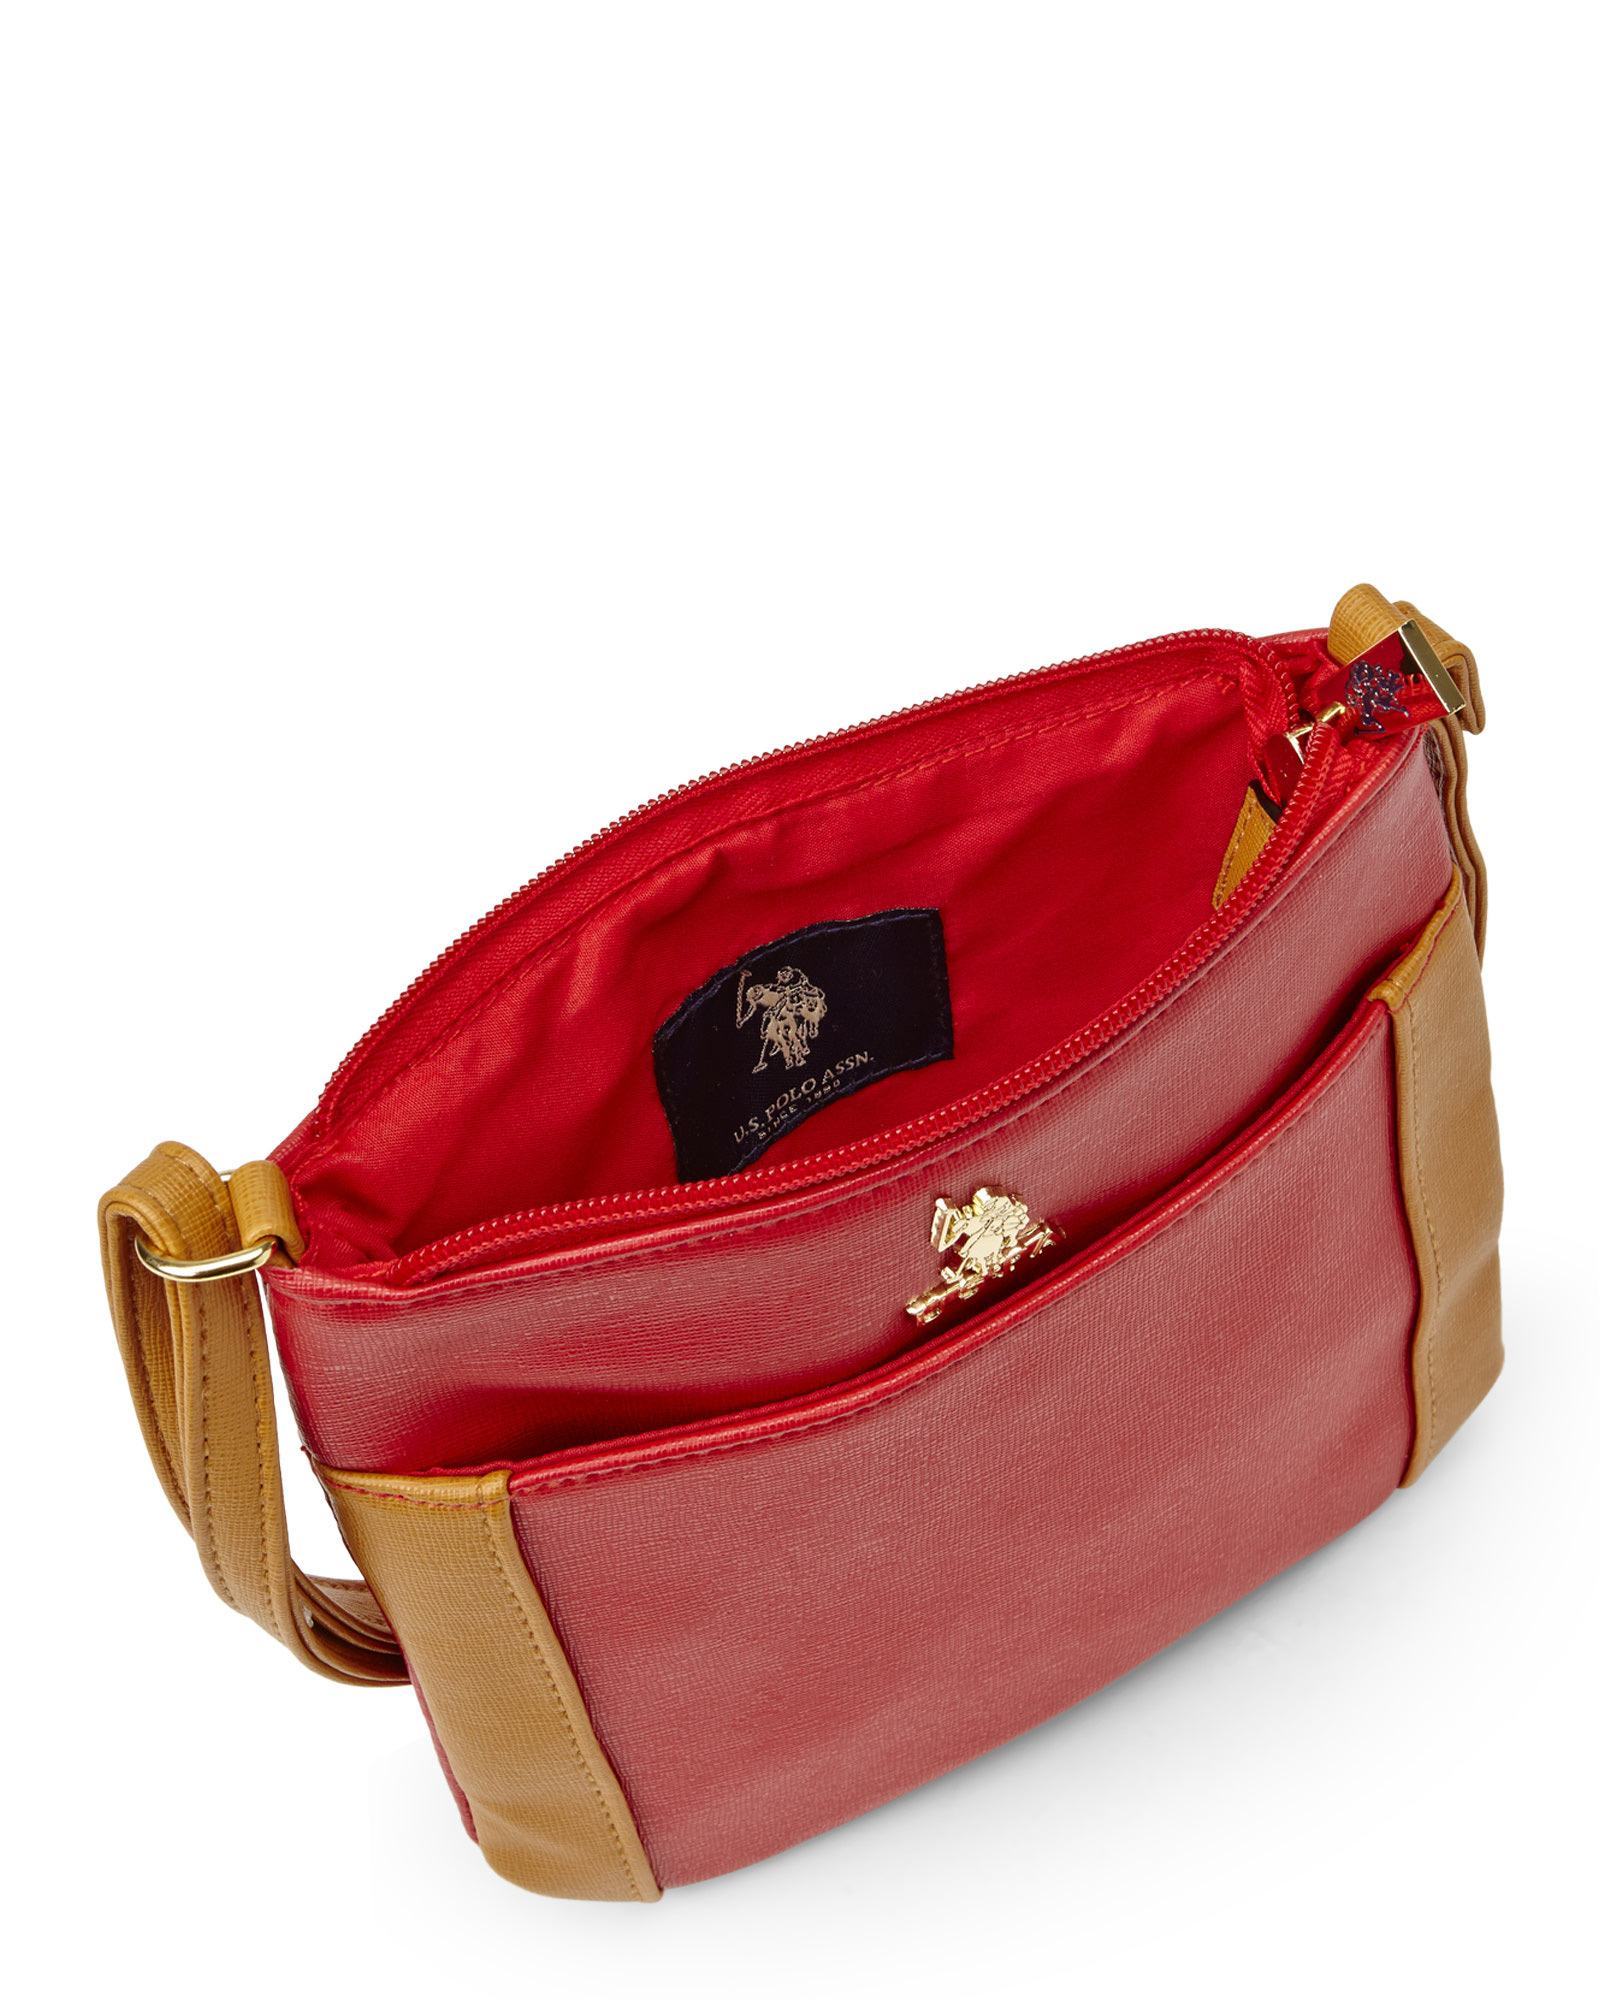 Lyst - U.S. POLO ASSN. Red   Cognac Greenwich Crossbody Bag in Red 2d3f71d2e4cd7